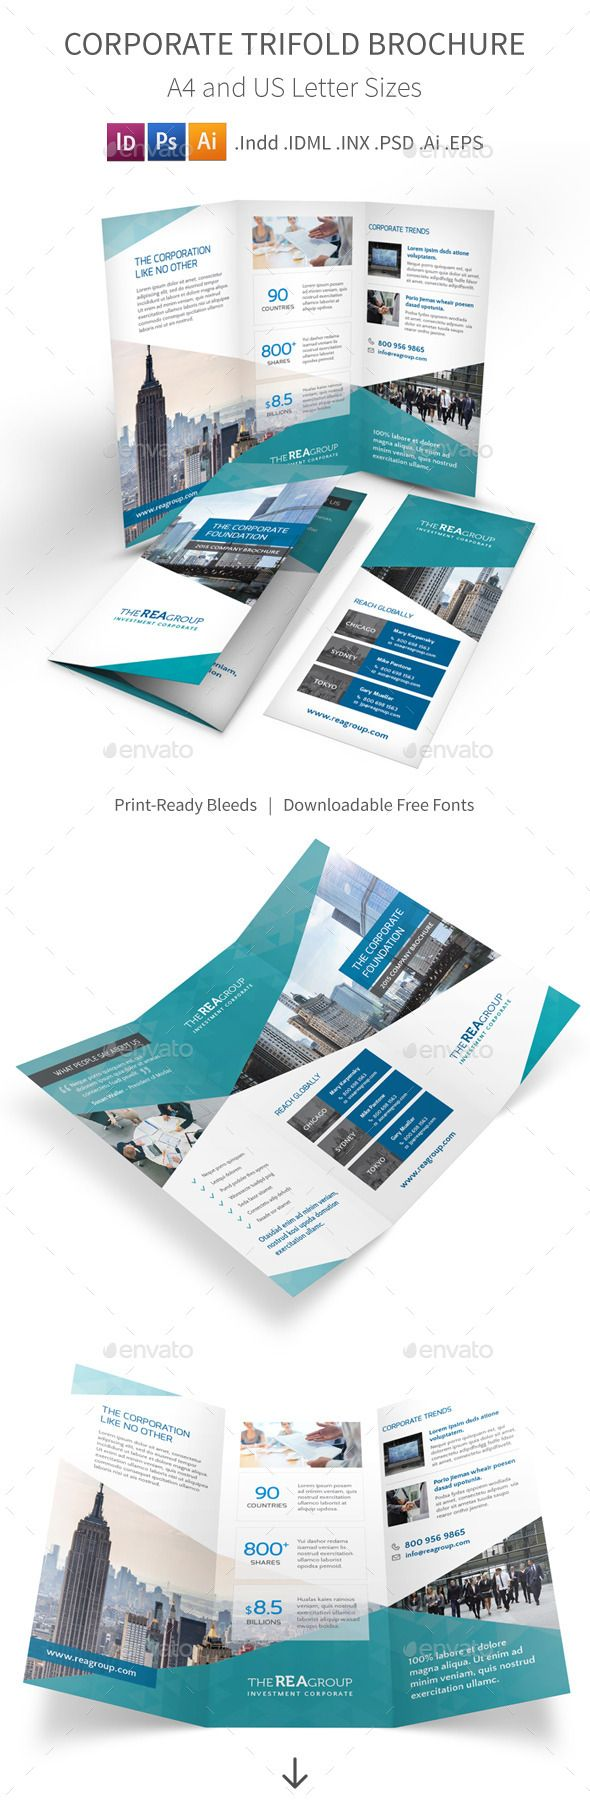 Clean and modern tri-fold brochure for your corporate company and business. Download: http://graphicriver.net/item/corporate-trifold-brochure/11023834?ref=ksioks